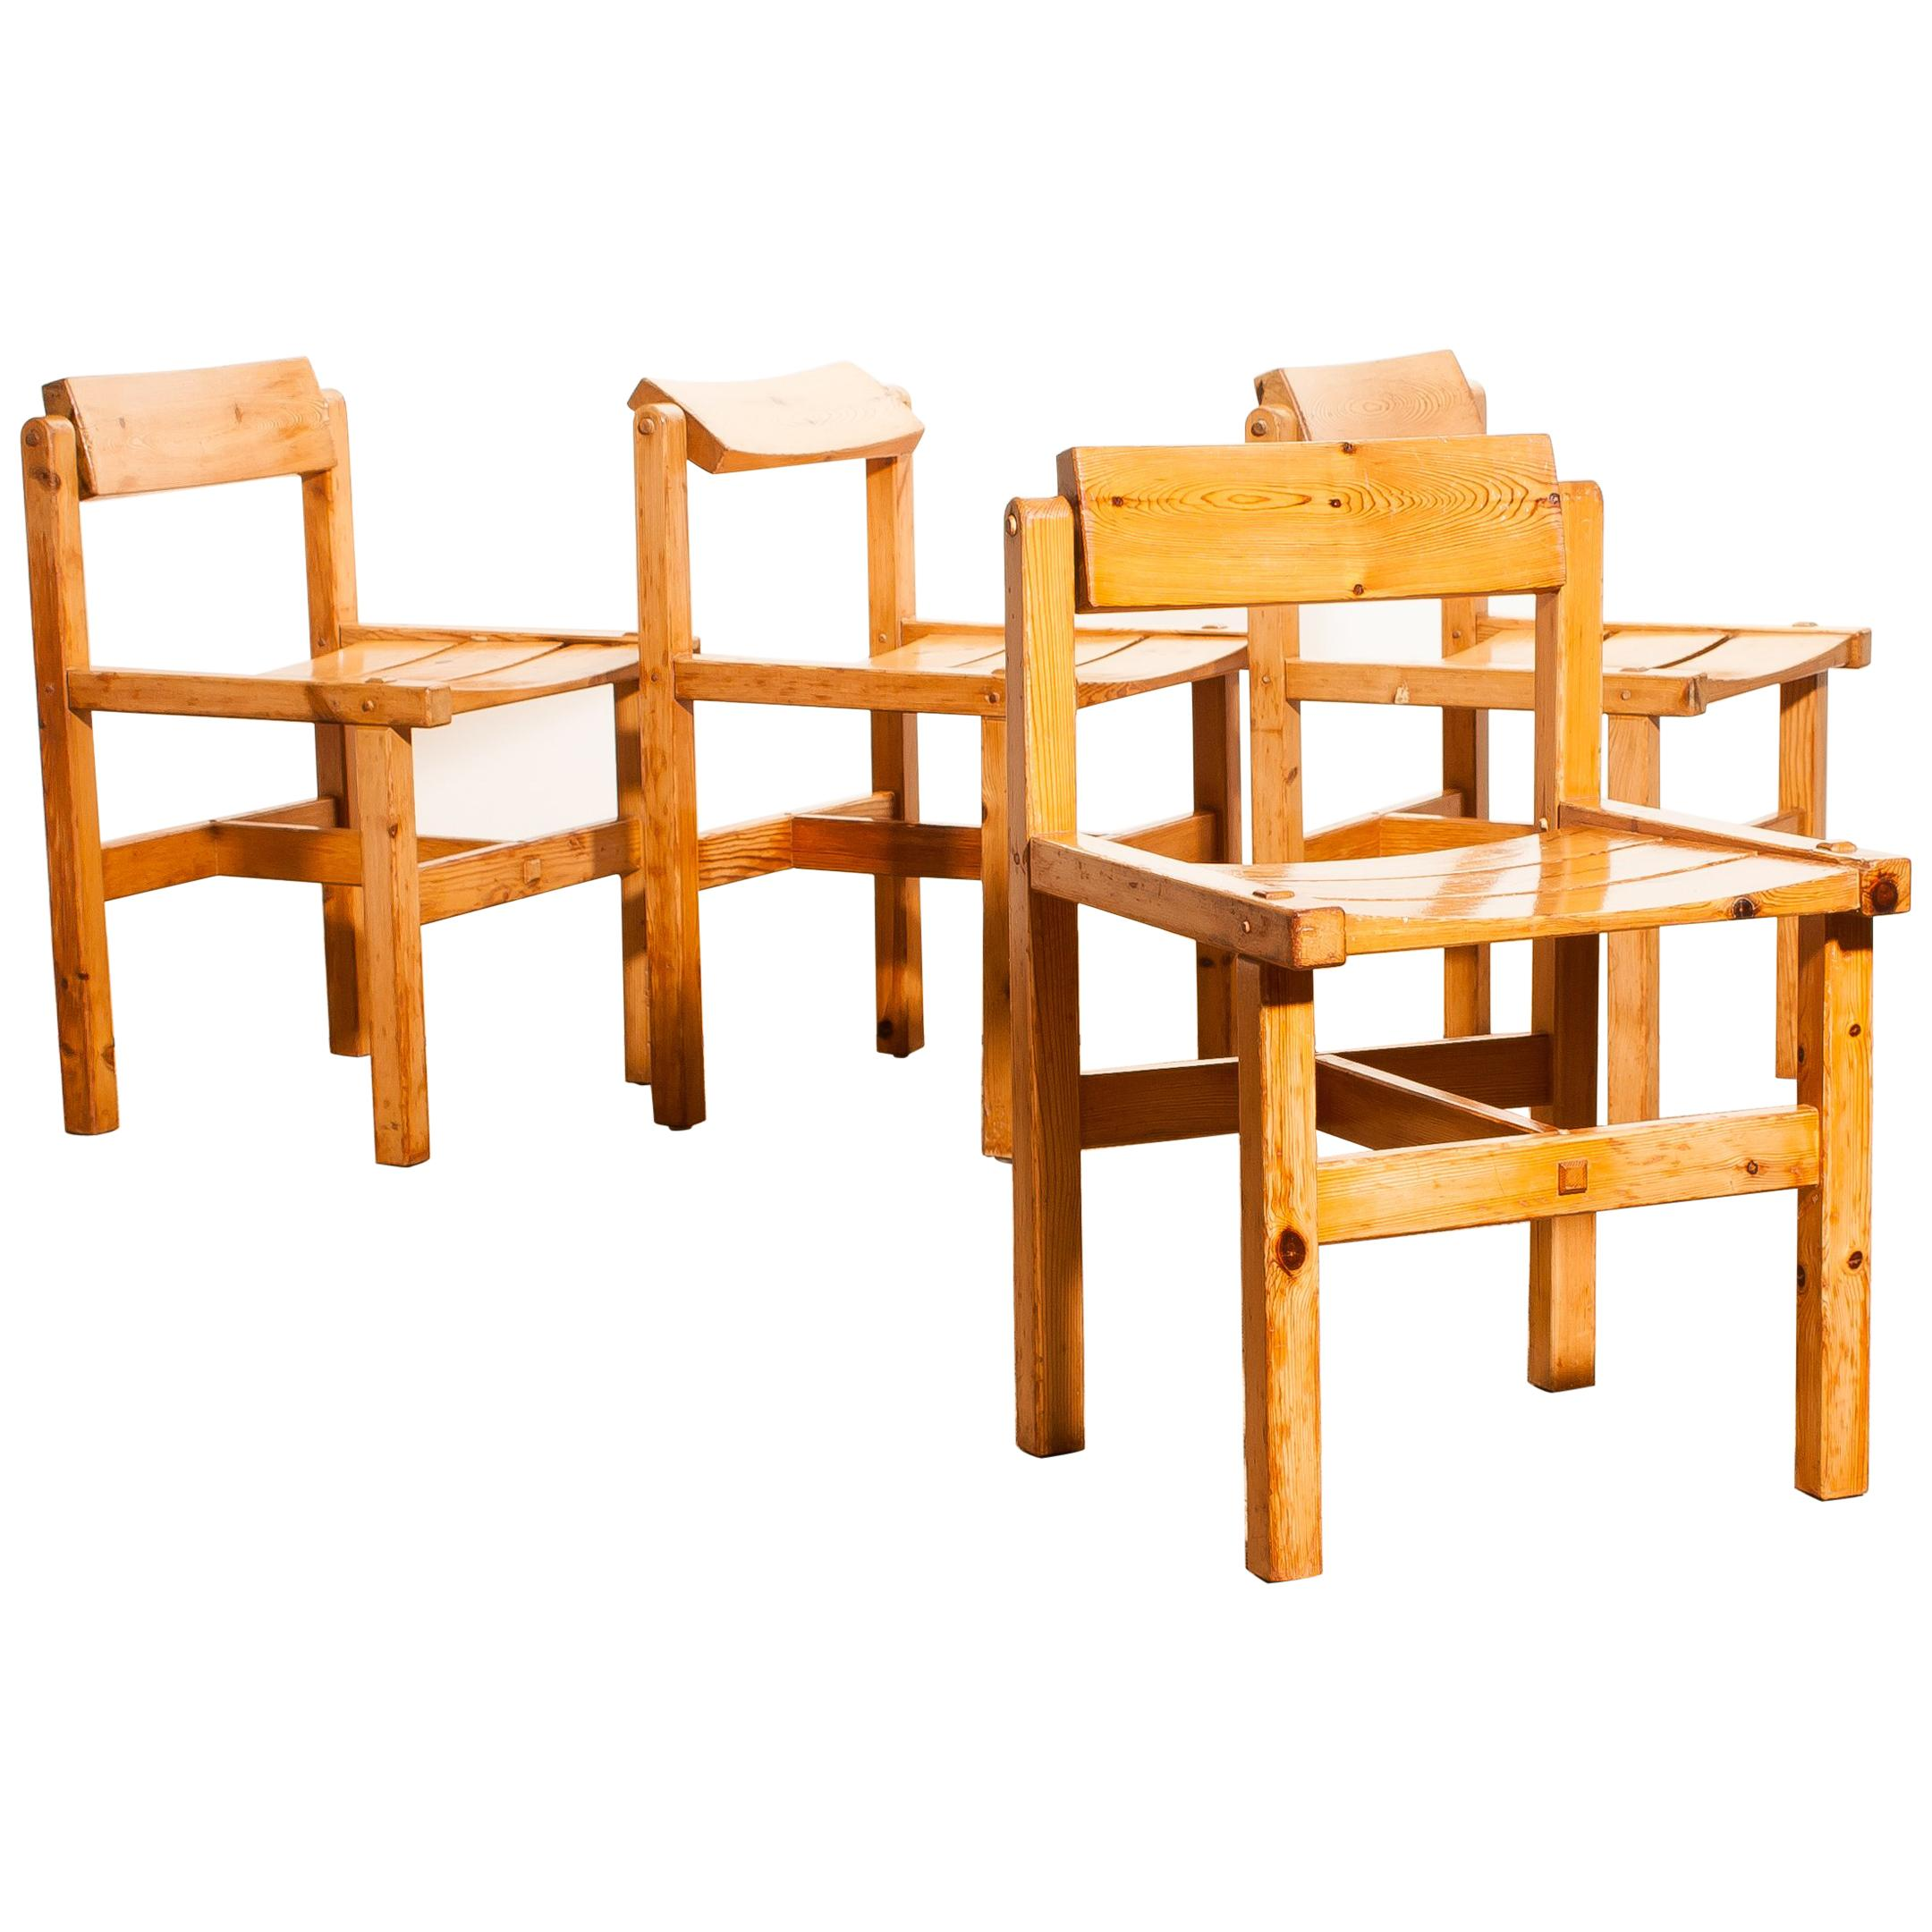 1960s Set Of Four Pine Chairs By Edvin Helseth Norway